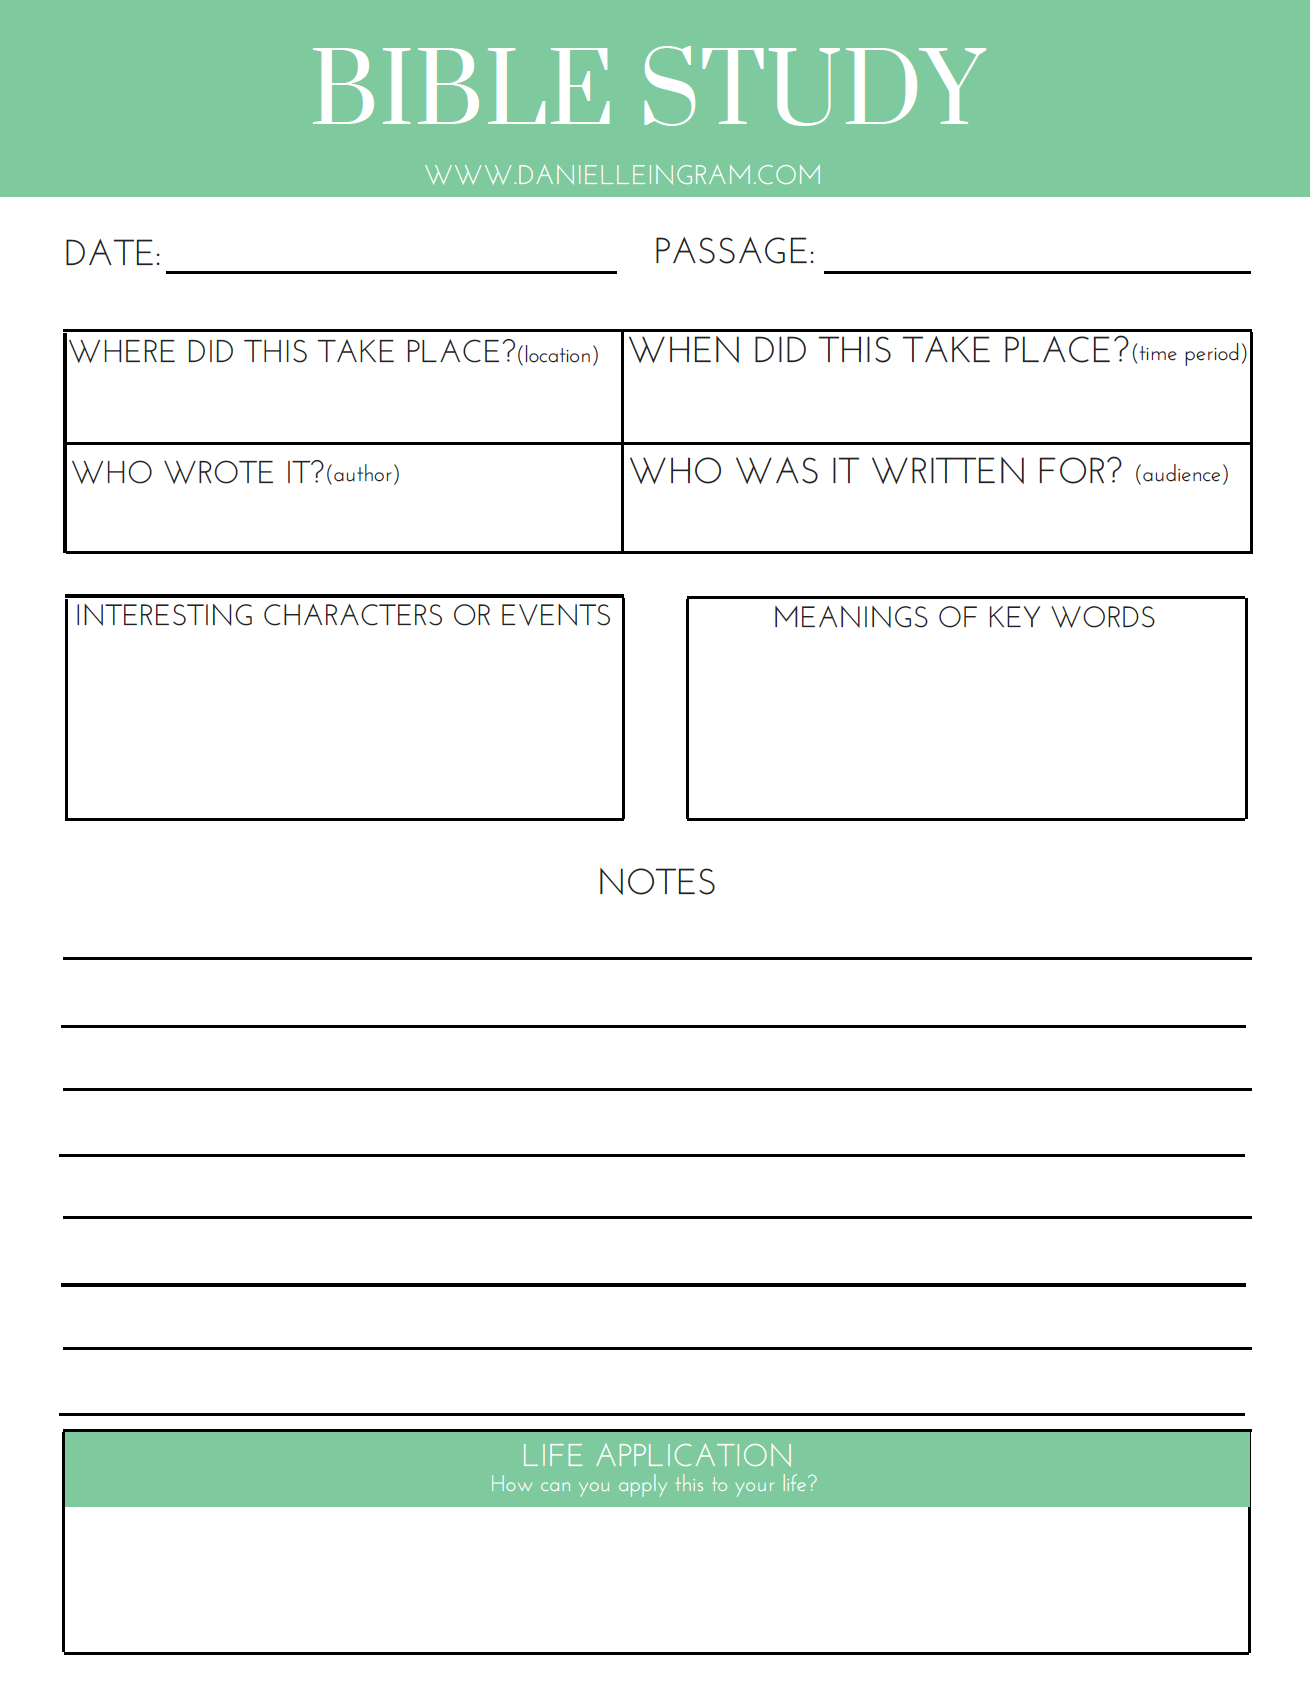 Free Bible Study Template Download From Danielle Ingram